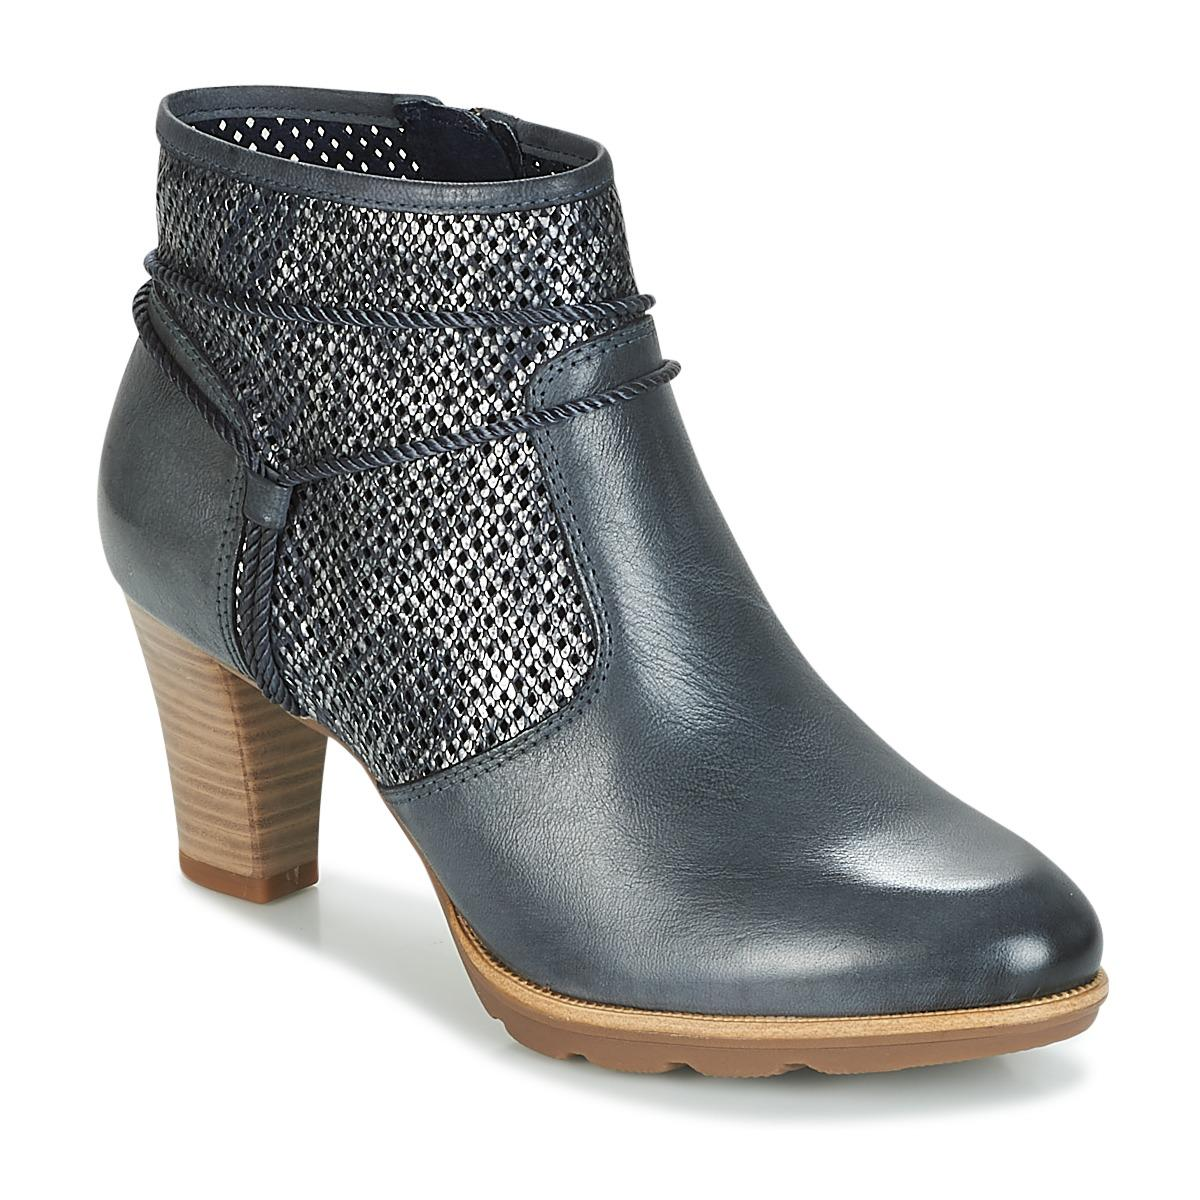 Sale New Styles Tamaris 112511425890 women's Low Ankle Boots in Outlet Very Cheap Clearance Sast Free Shipping Best Prices Discount Extremely xtNQkhq